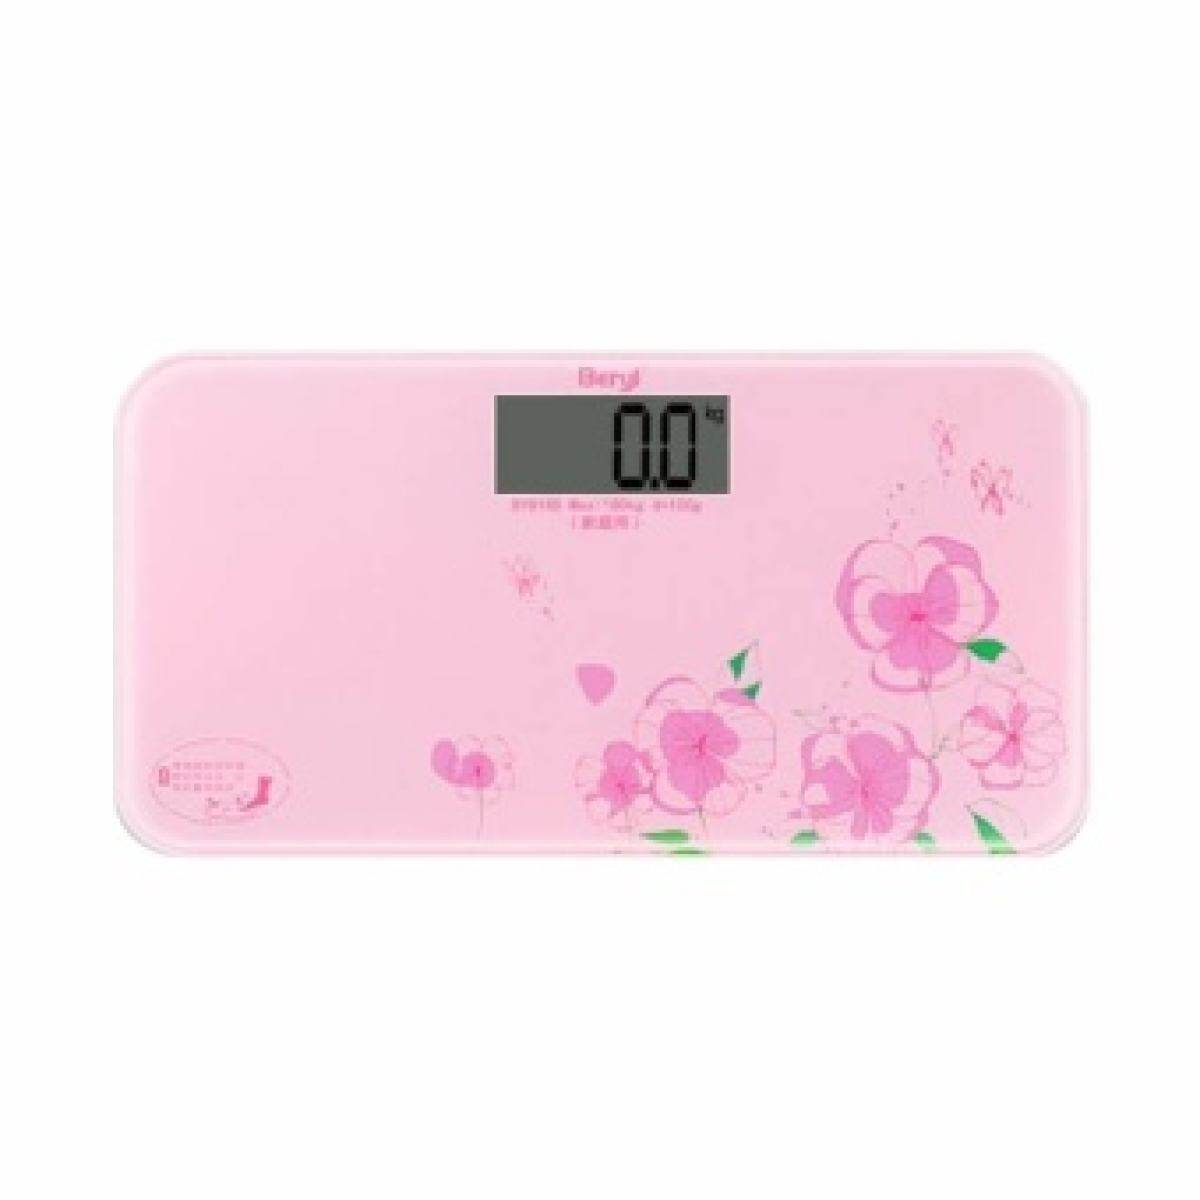 Mini scale weighing precision the human body Portable home body scale health scale weighing machine electronic said-red wine